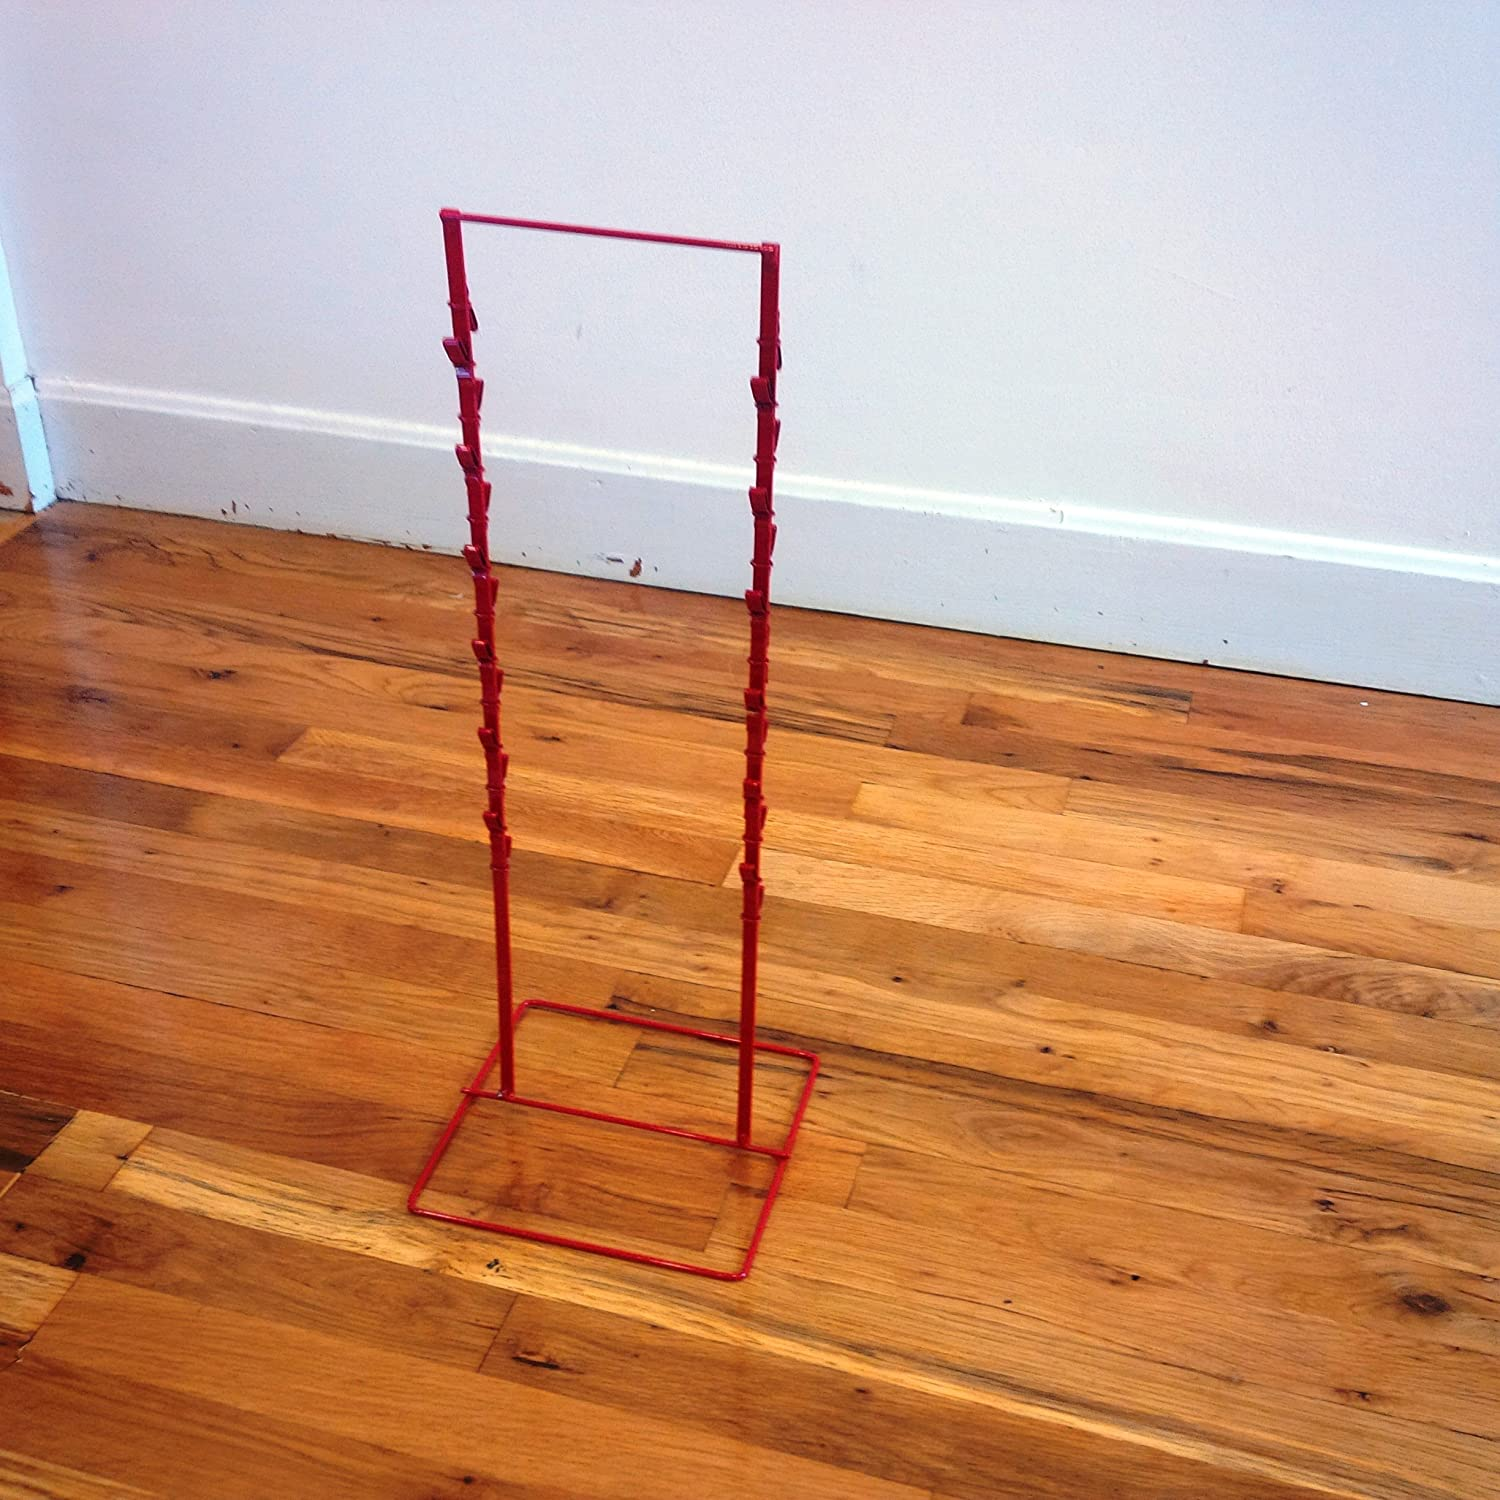 Double Round Strip Display Rack in Red - 22 H x 8.5 W x 8 D Inches